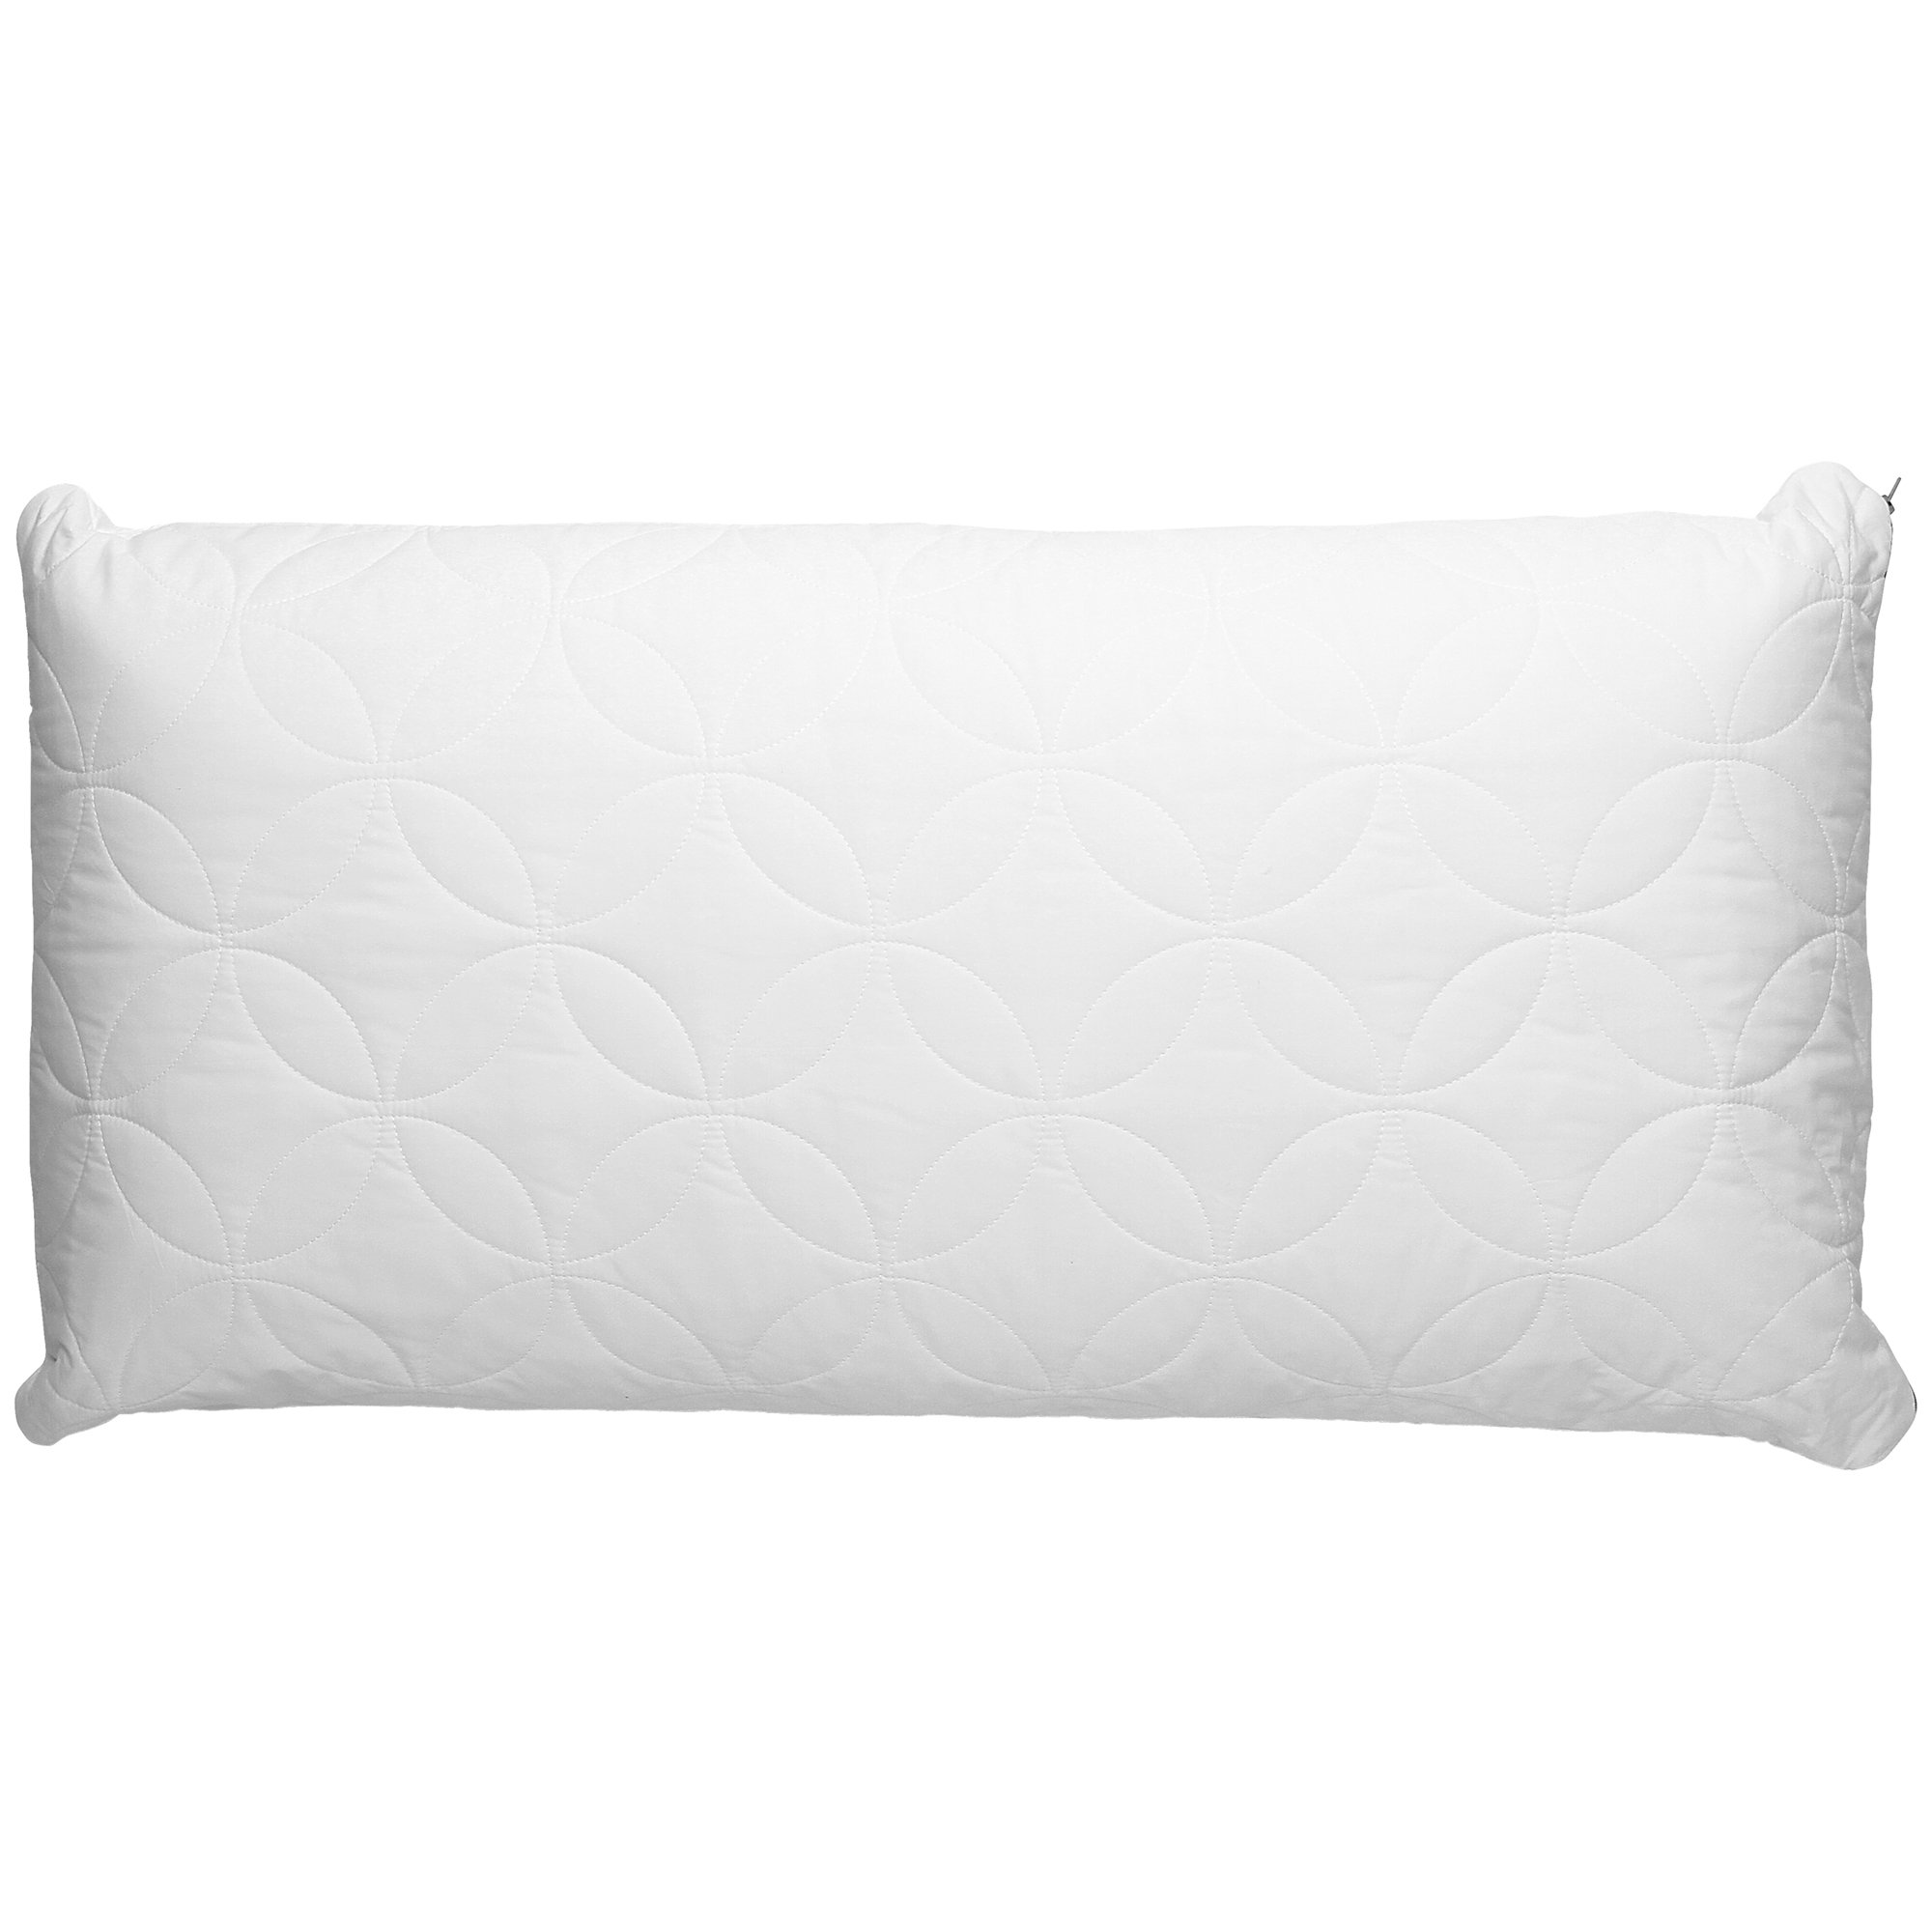 pillow cloud tempur bubble main shot cover dreams